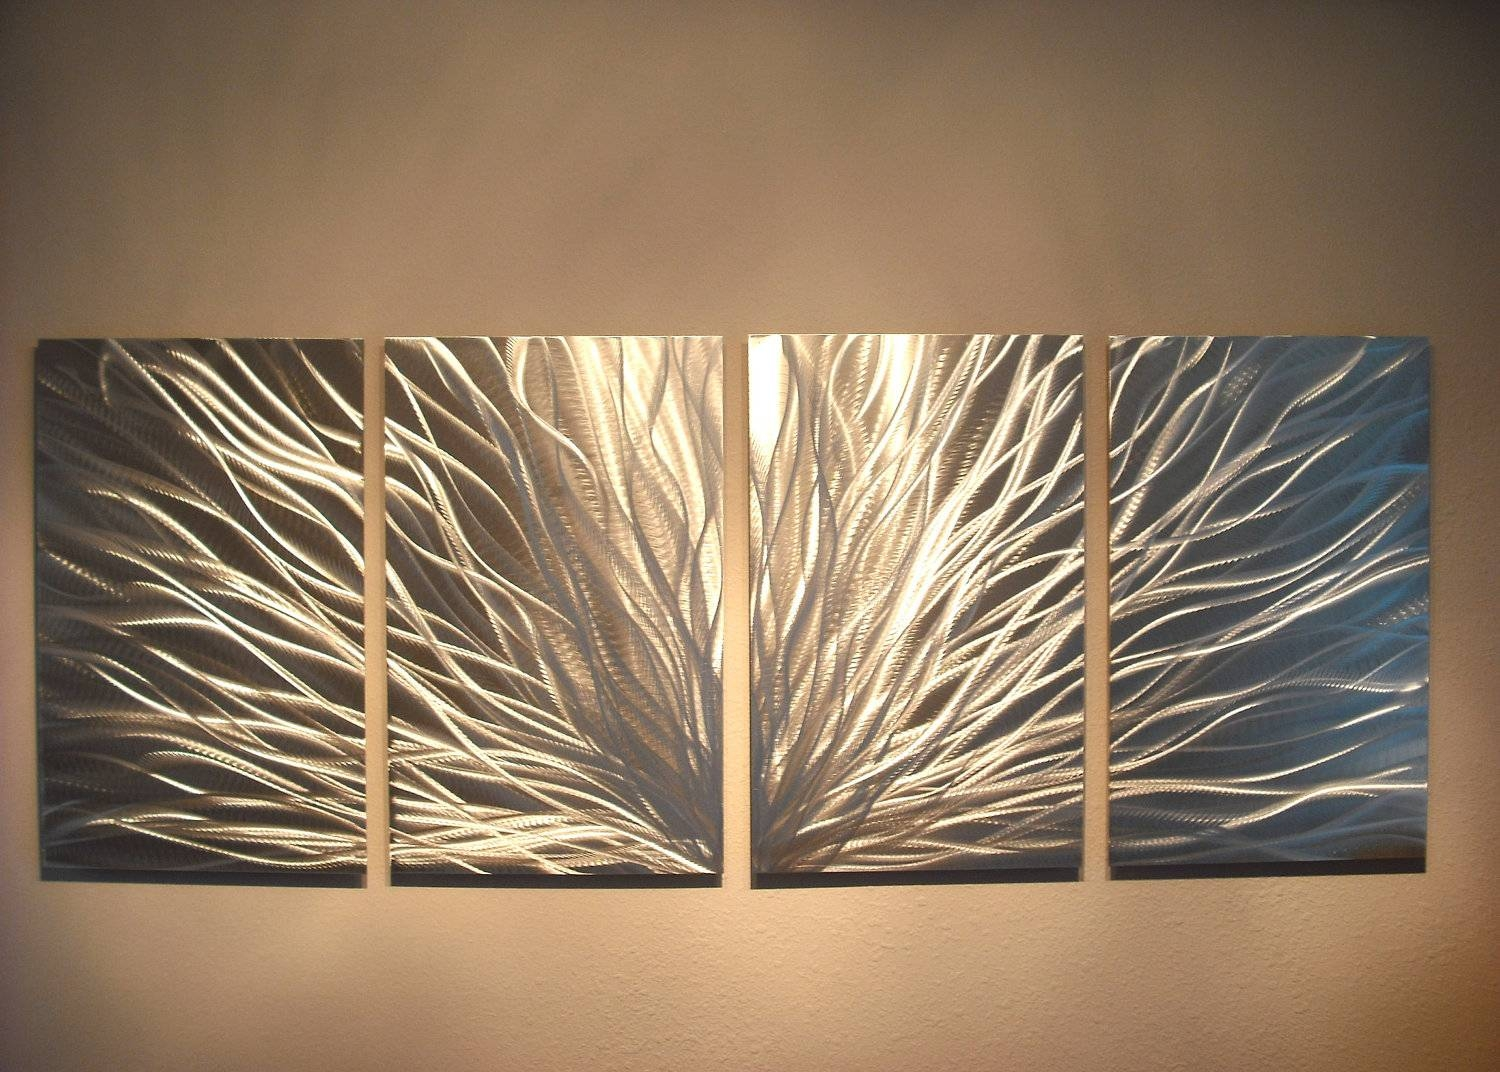 Radiance – Abstract Metal Wall Art Contemporary Modern Decor Pertaining To Current Metallic Wall Art (View 6 of 25)